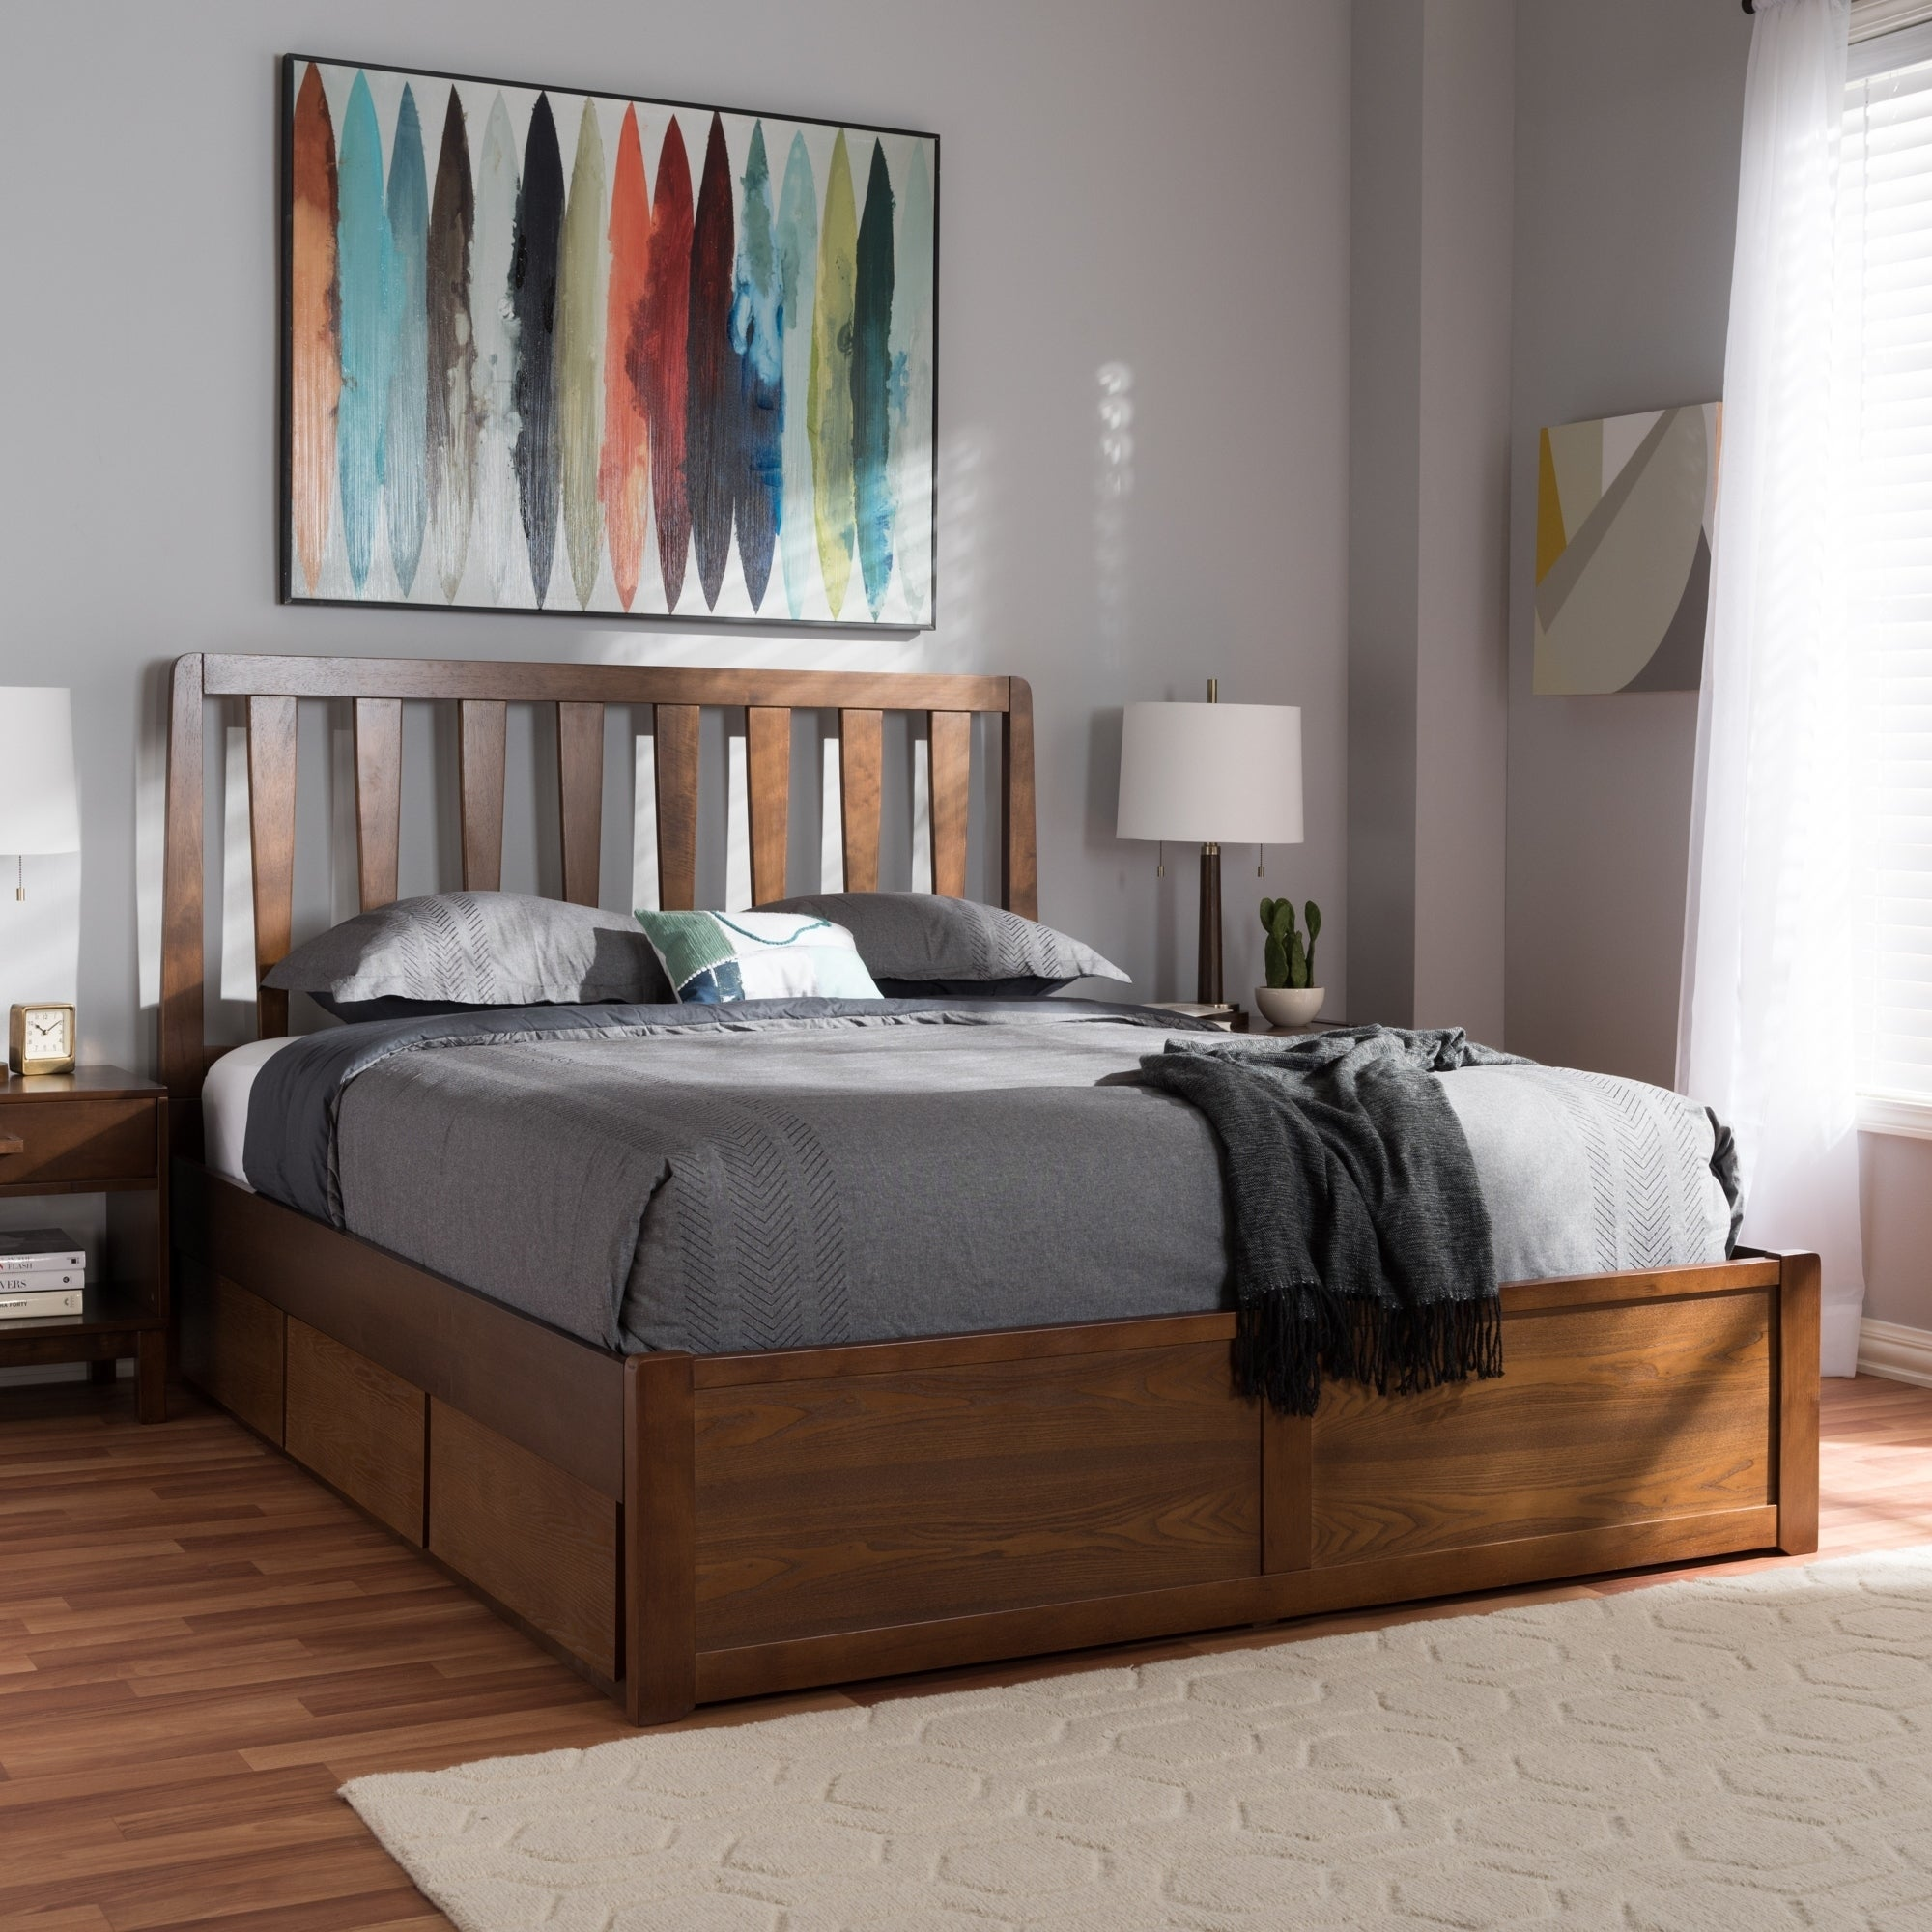 Shop Contemporary Walnut Wood Storage Bed by Baxton Studio - On Sale - Free Shipping Today - Overstock.com - 21194722 & Shop Contemporary Walnut Wood Storage Bed by Baxton Studio - On Sale ...